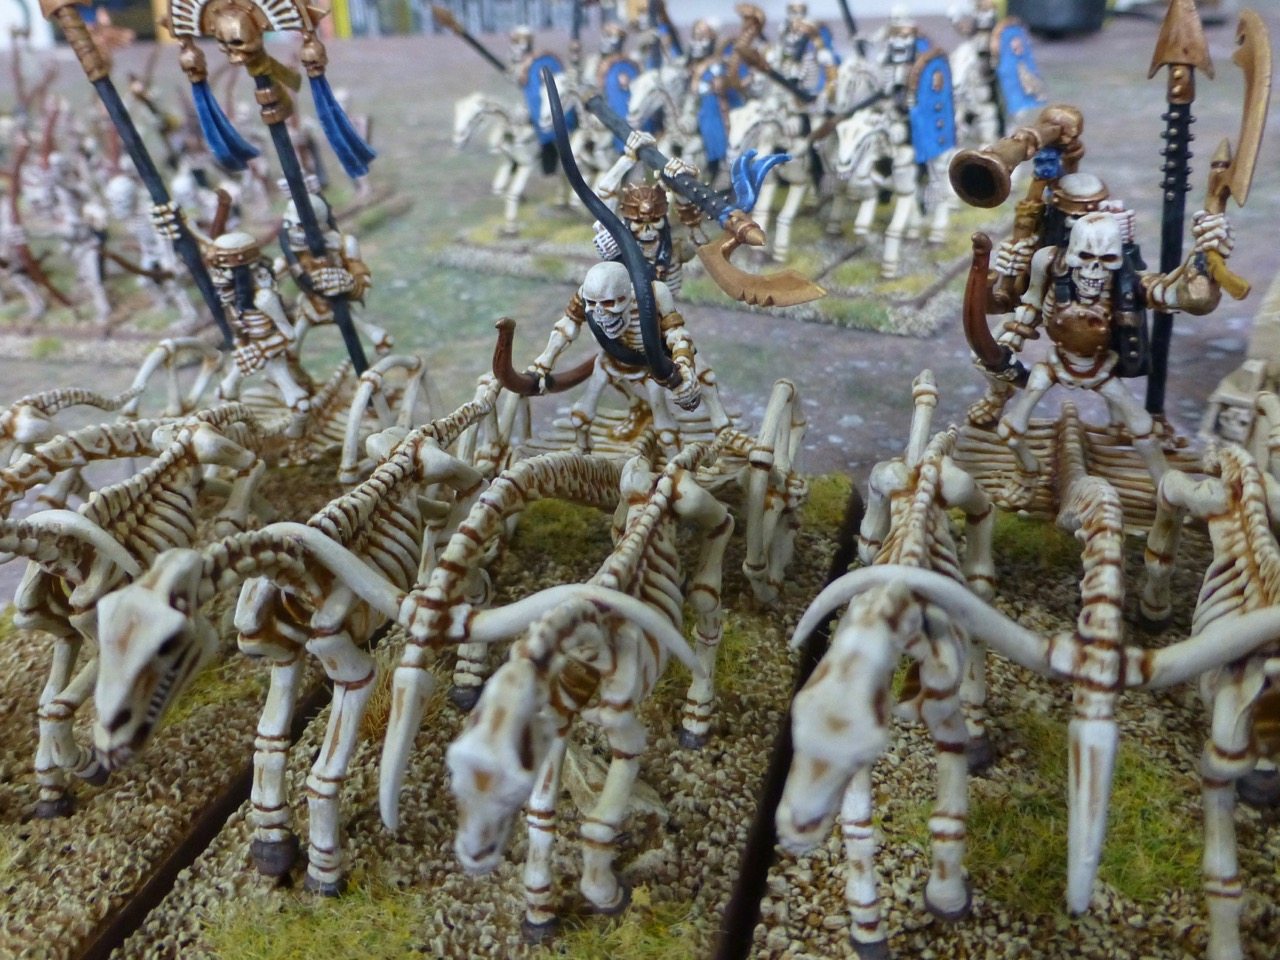 Close up view of skeletal chariots